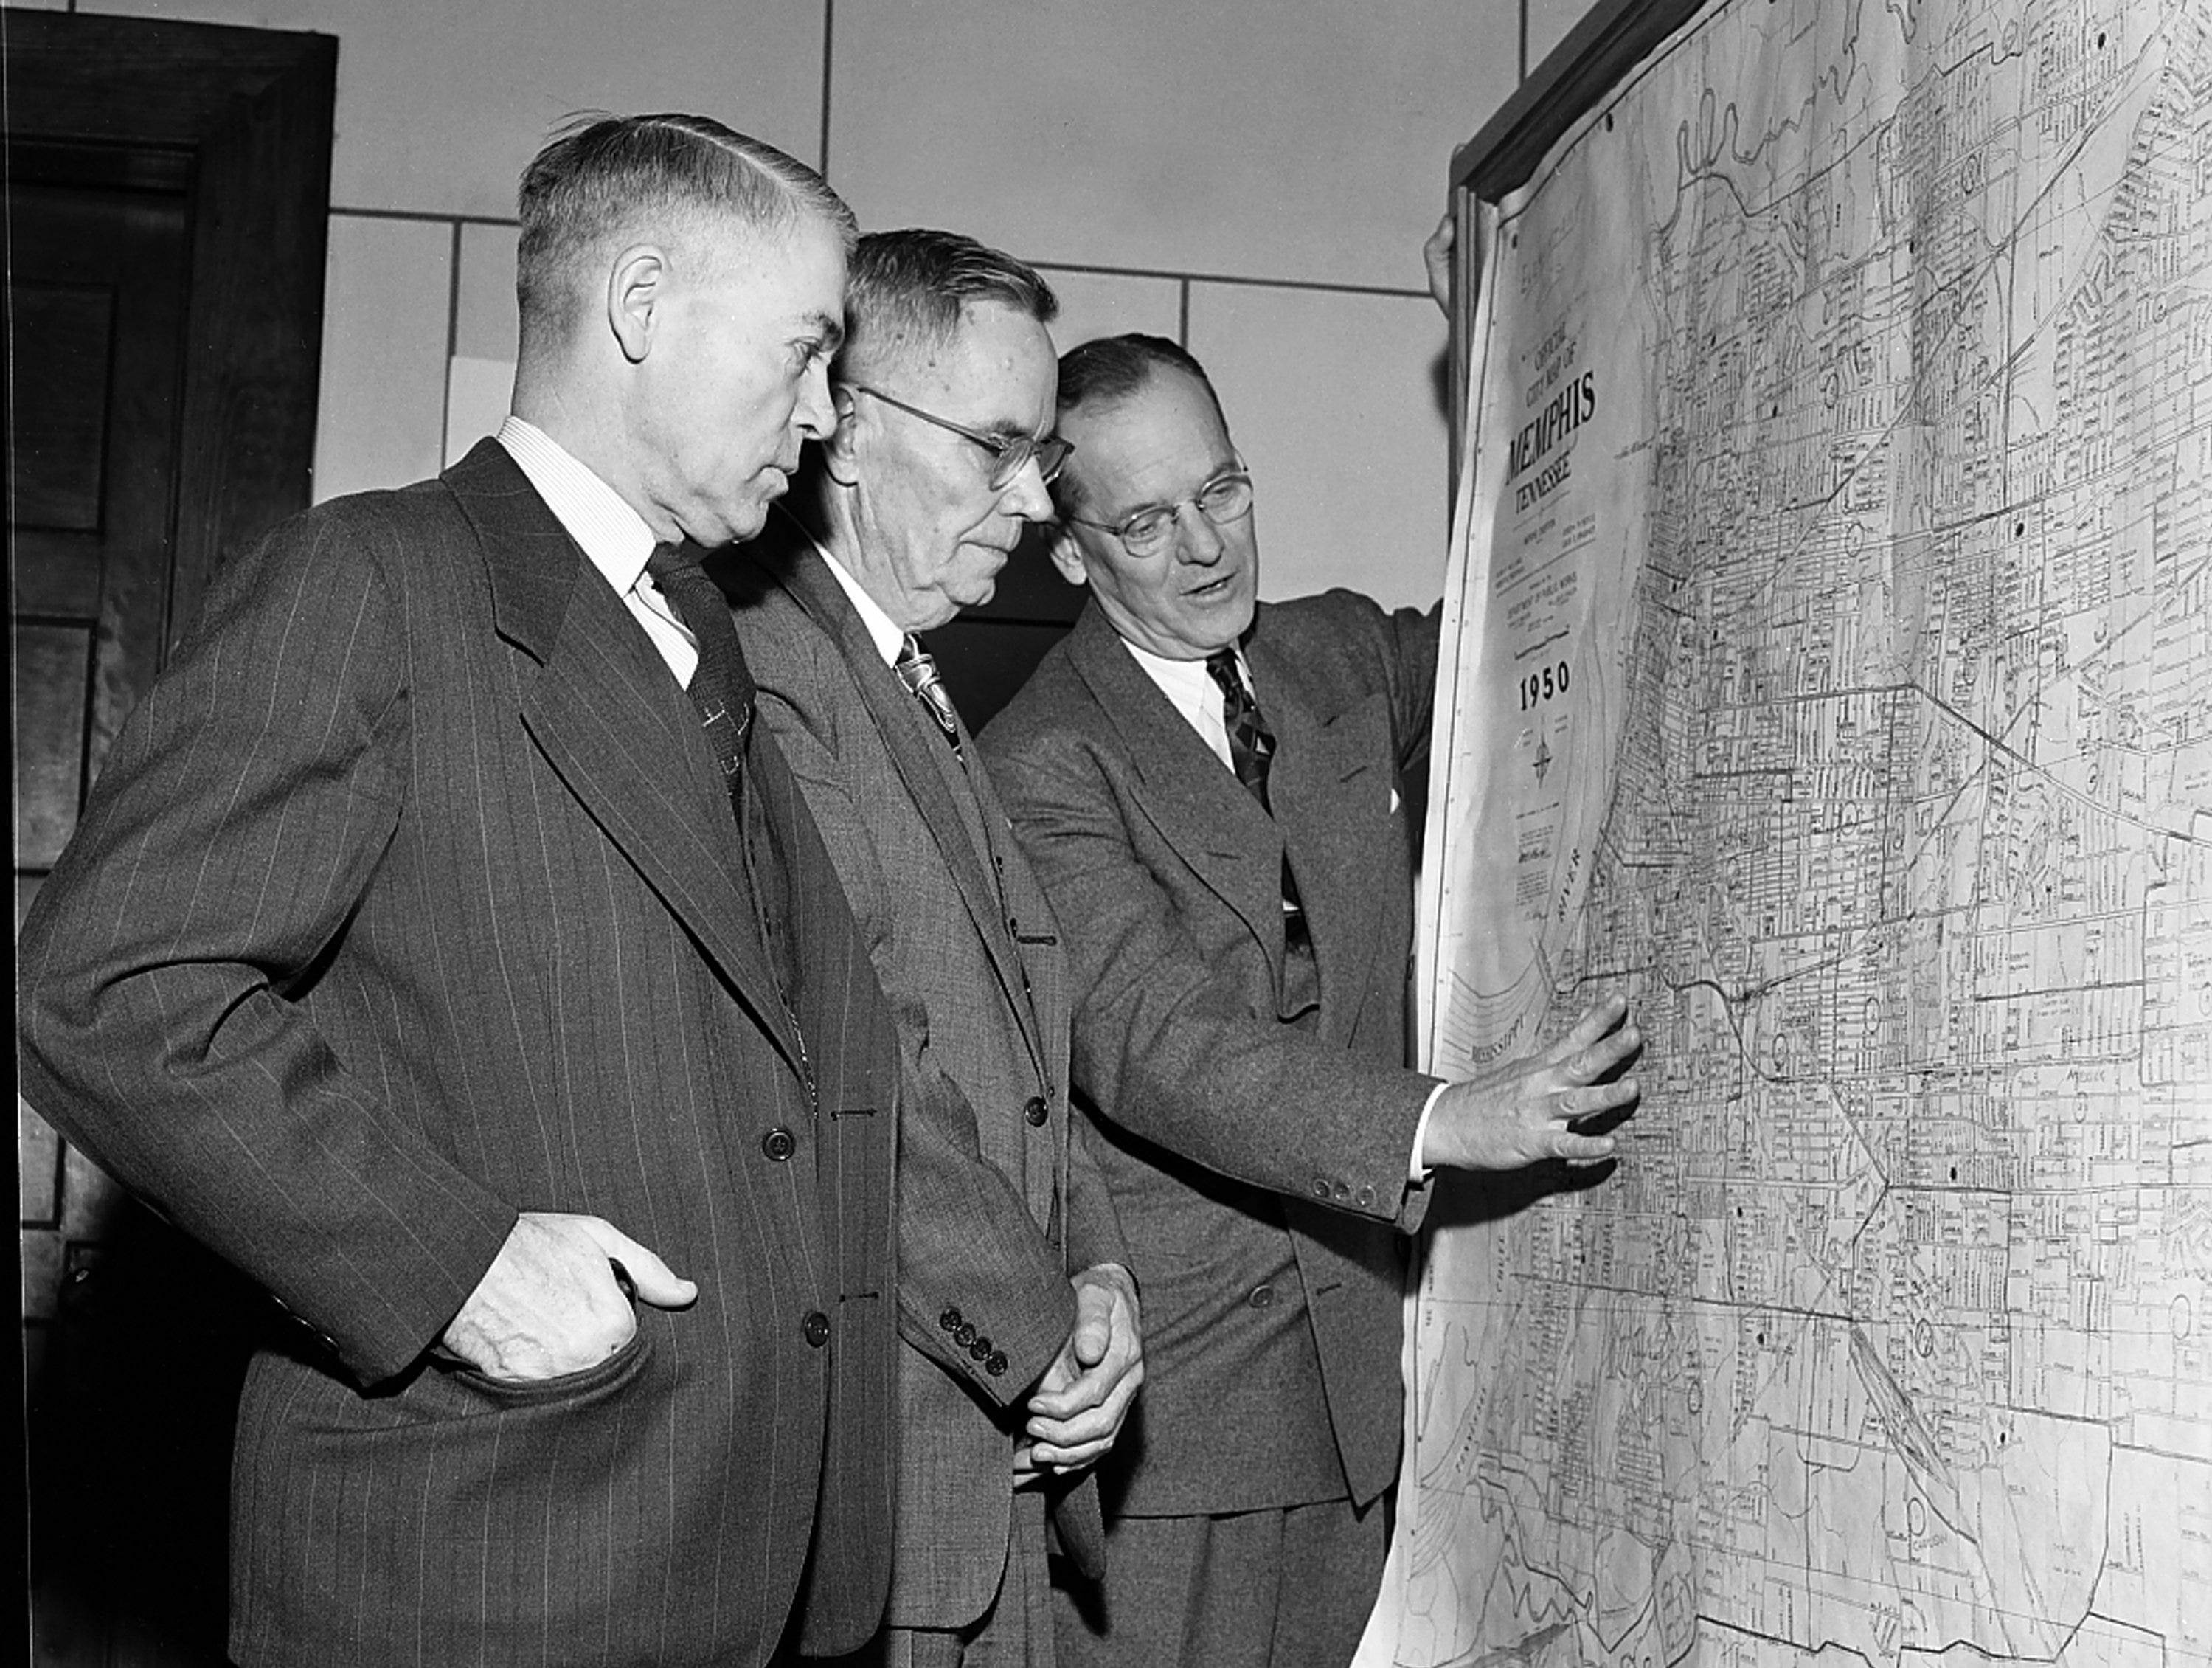 How Memphis schools have kept pace with the rapid growth of the city was pointed out in February 1951 to Lyman Fort (Left), superintendent of schools at Sioux Falls, S.D.  Mr. Fort talked school problems with O.H. Jones (Center), financial secretary of the Memphis Board of Education, and Ernest Ball, superintendent of city schools.  Mr. Fort was in town to address the Rotary Club.